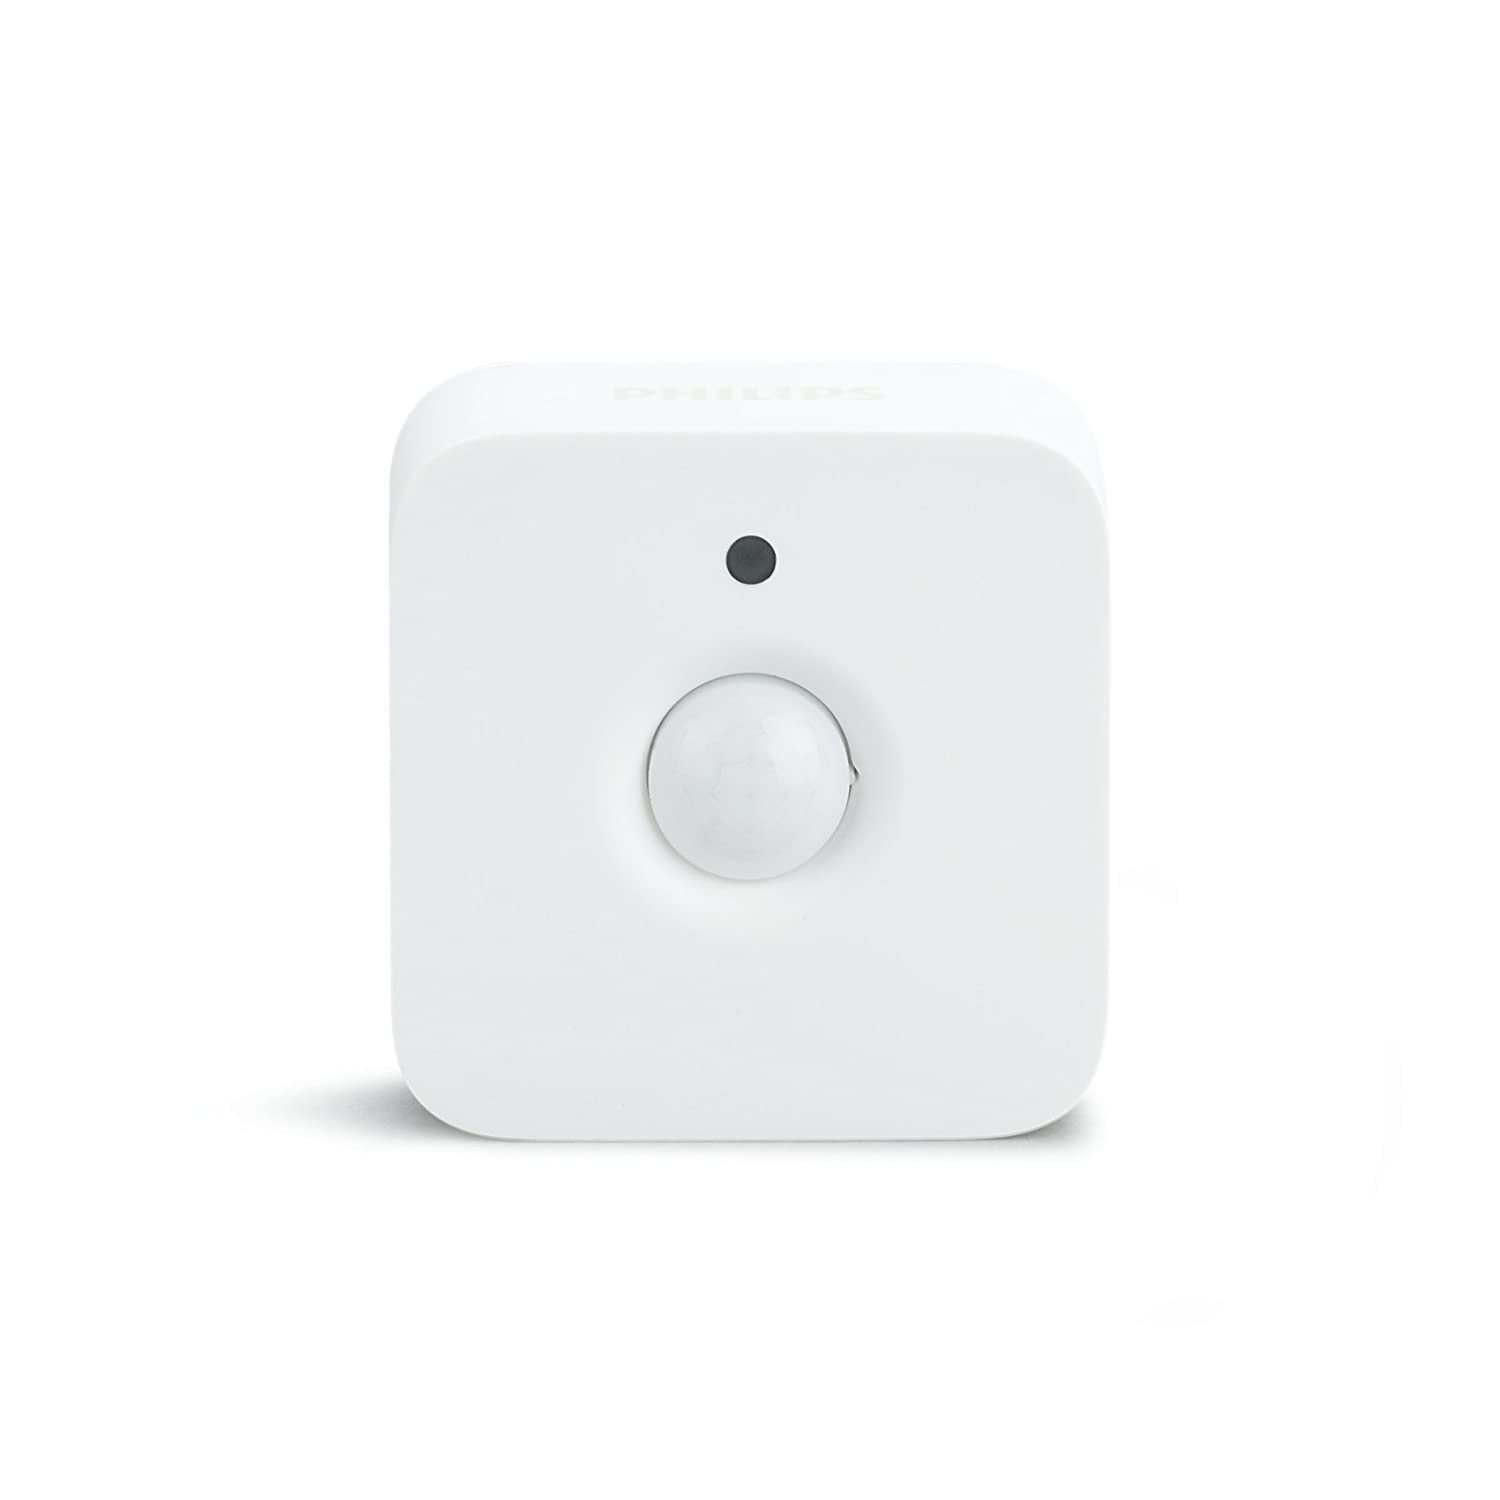 Philips Hue Sensore Di Movimento Per Accensione E Spegnimento, Batterie Incluse, Bianco by Philips